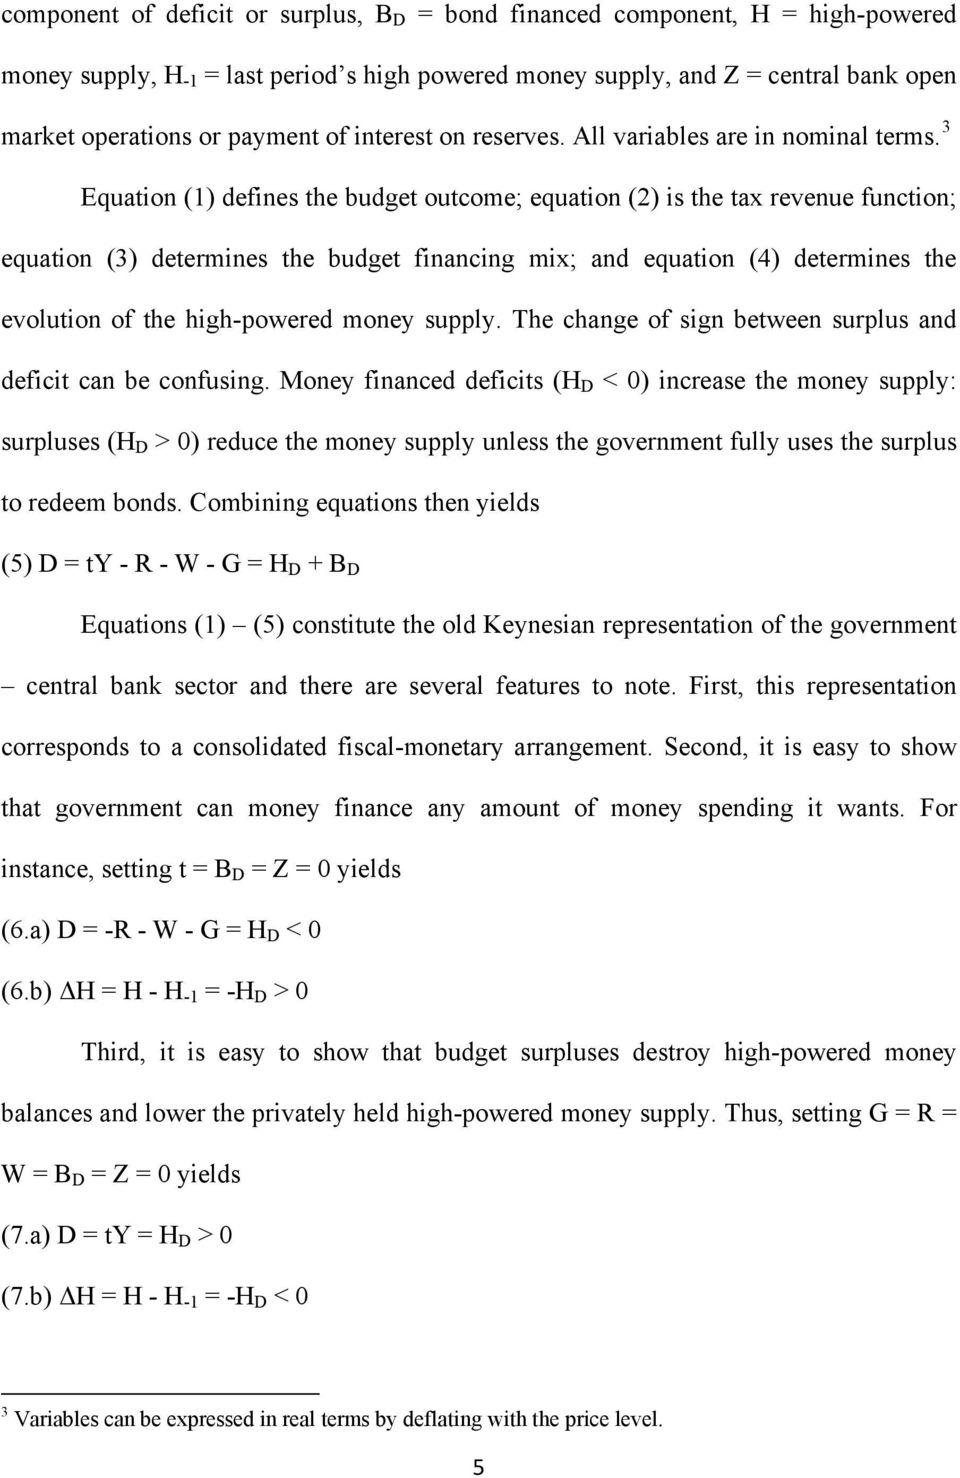 3 Equation (1) defines the budget outcome; equation (2) is the tax revenue function; equation (3) determines the budget financing mix; and equation (4) determines the evolution of the high-powered